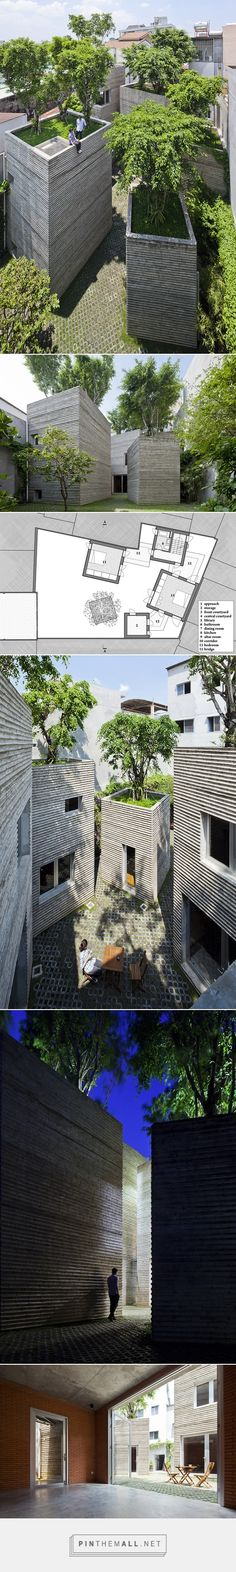 for Trees / VTN Architects House for Trees / Vo Trong Nghia Architects Green Architecture, Architecture Details, Landscape Architecture, Landscape Design, Sustainable Architecture, Residential Architecture, Contemporary Architecture, Arch House, House Trees